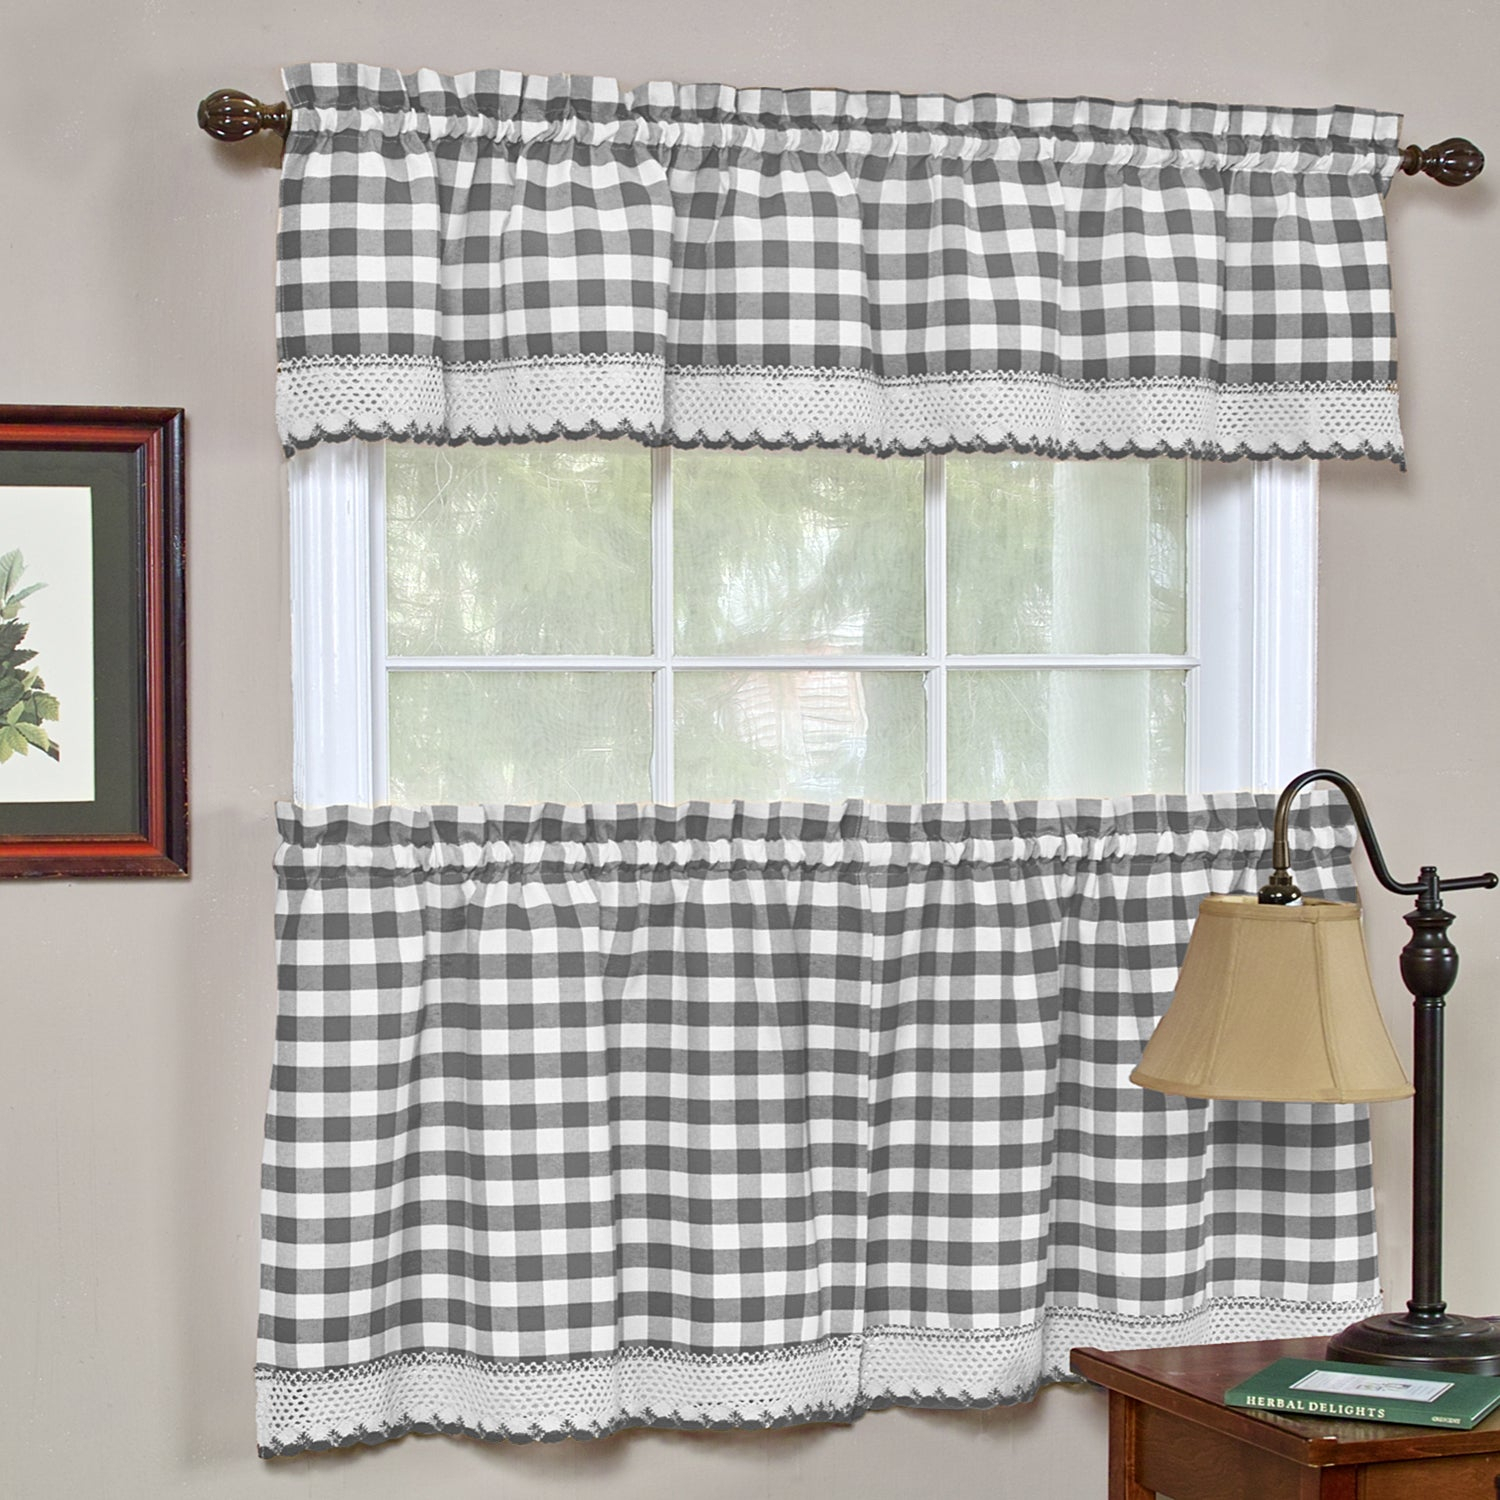 Buffalo Check Cotton Blend Grey Kitchen Curtain Tier Pair Within Cotton Blend Grey Kitchen Curtain Tiers (View 4 of 20)